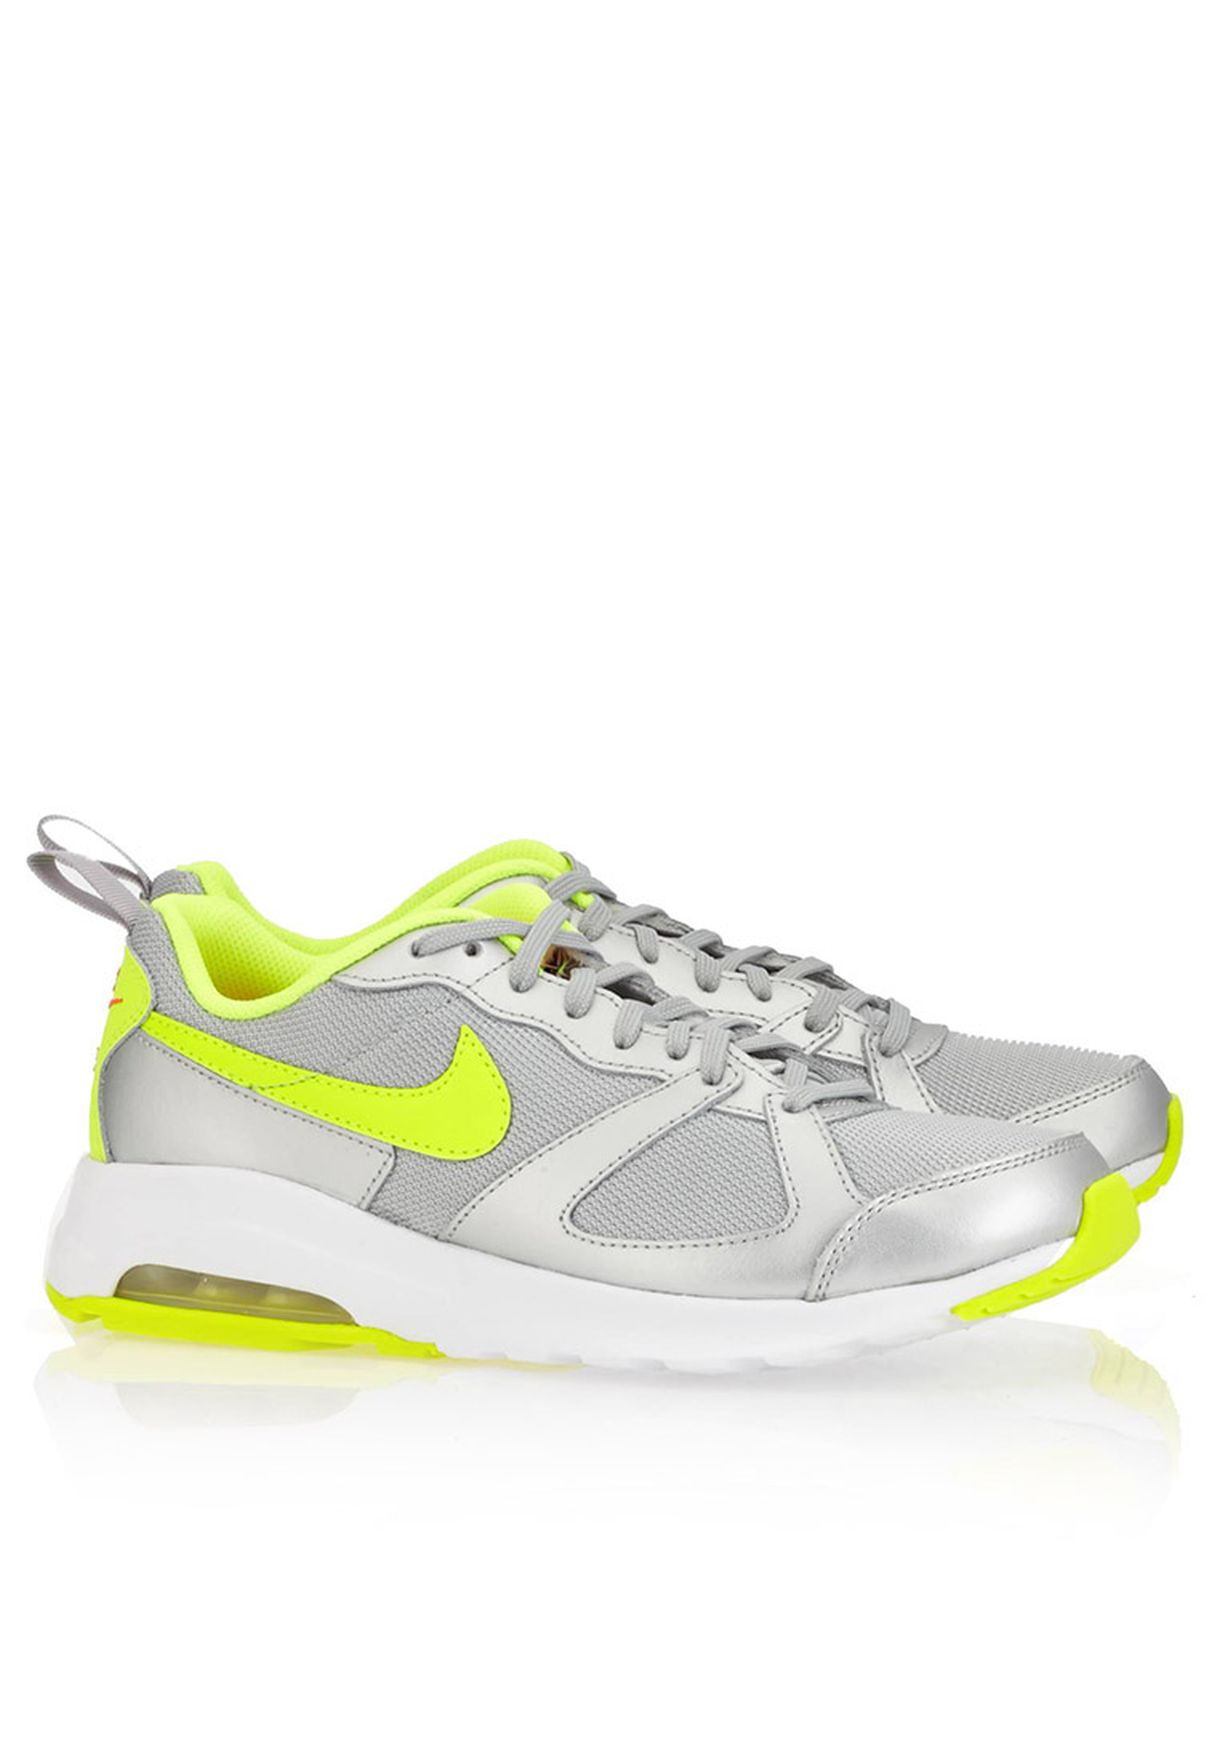 Qatar Air Shop Max 654729 in 071 for Muse Nike Femme silver Rqnng6p